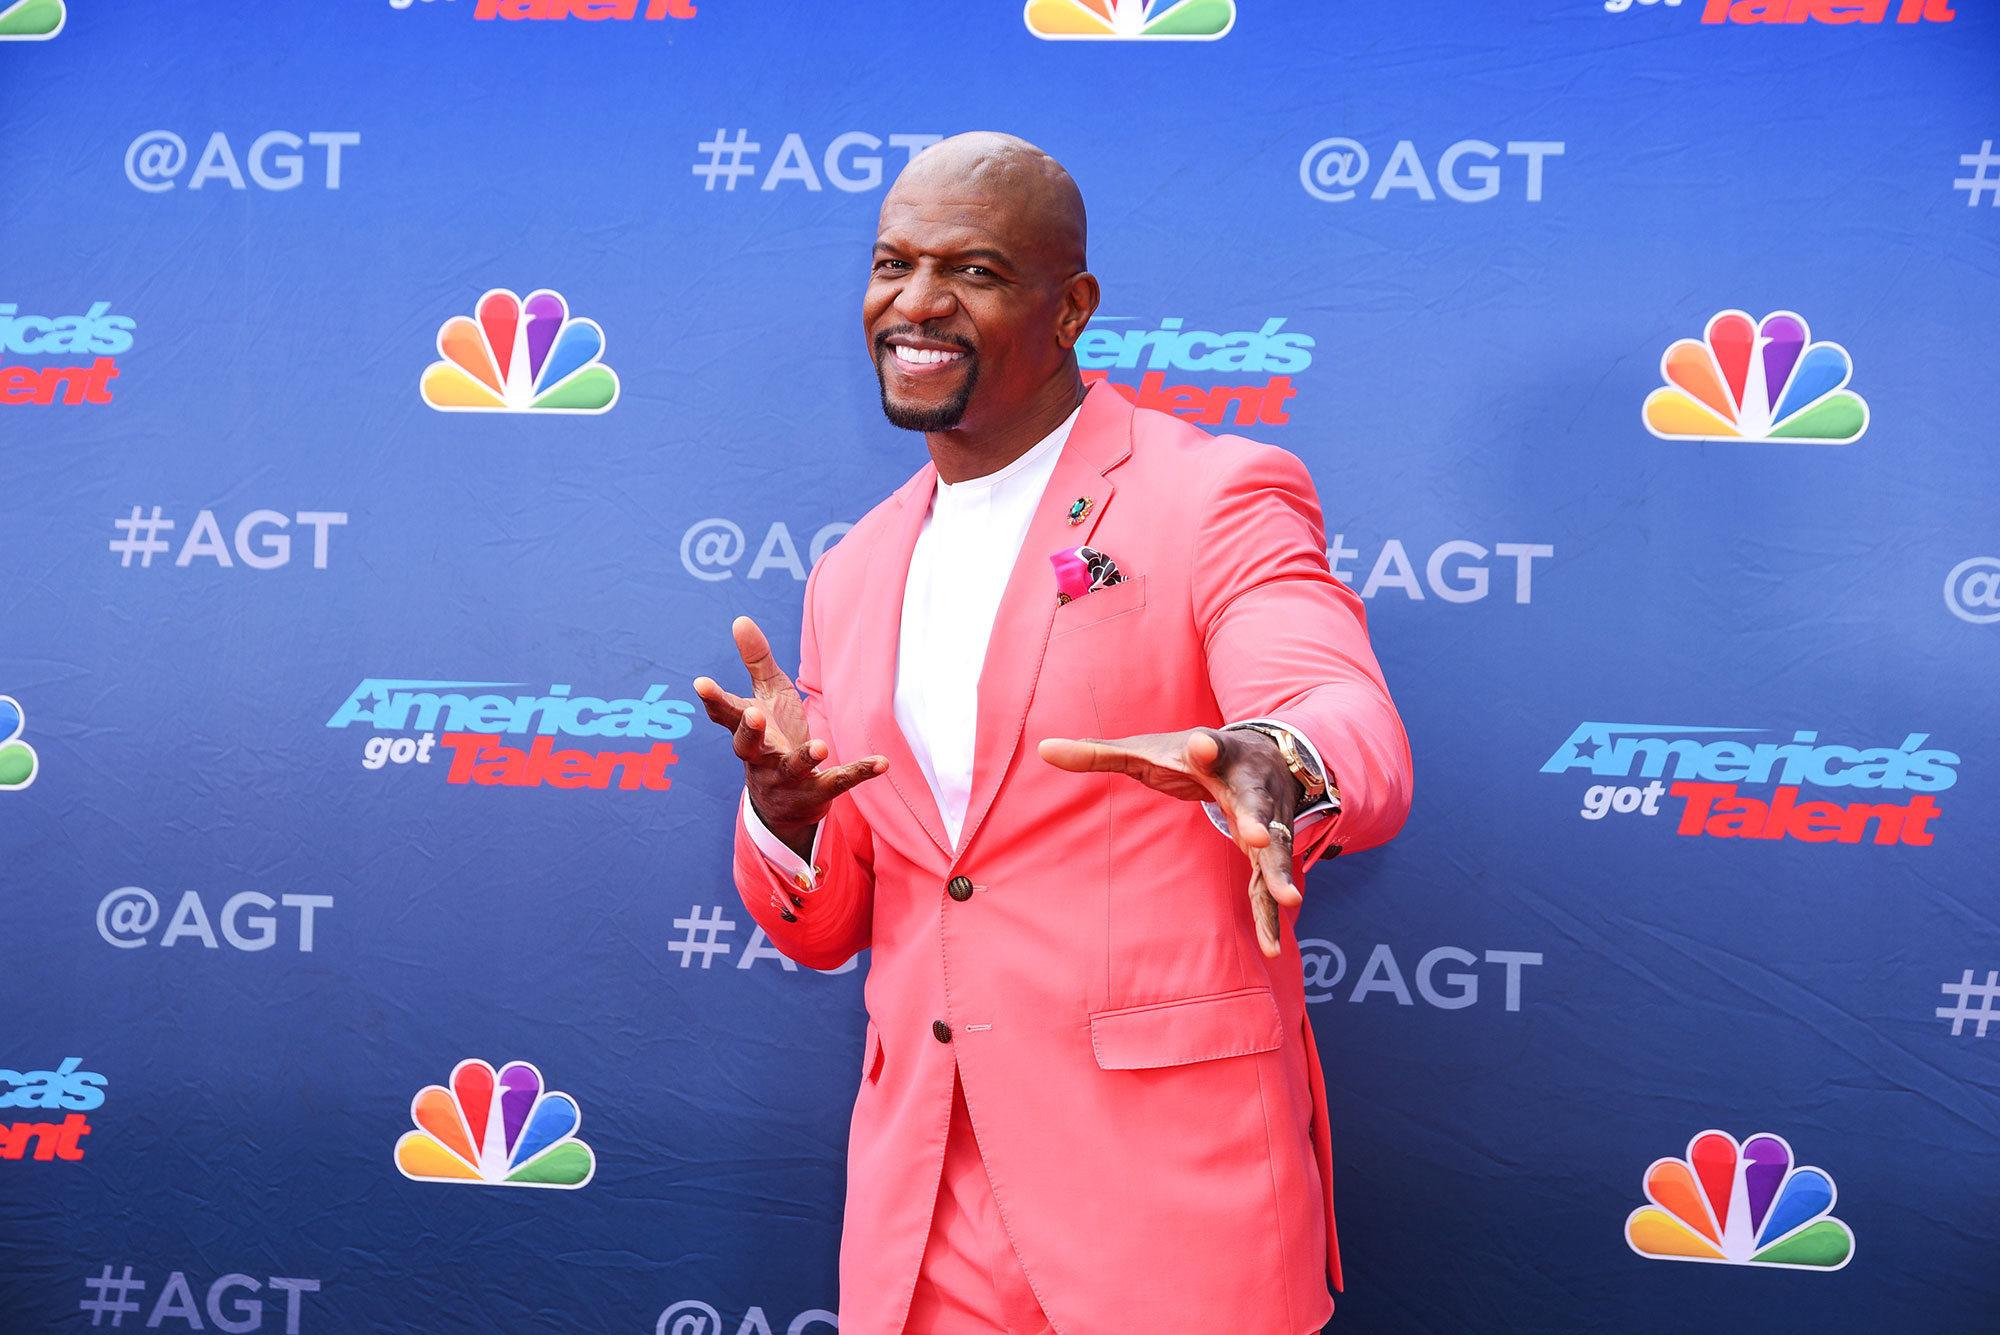 "Terry Crews Is Still Holding Out Hope for 'White Chicks 2': 'That Movie's Going to Happen' - Terry Crews attends NBC's ""America's Got Talent"" Season 14 Kick-Off at Pasadena Civic Auditorium on March 11, 2019 in Pasadena, California."